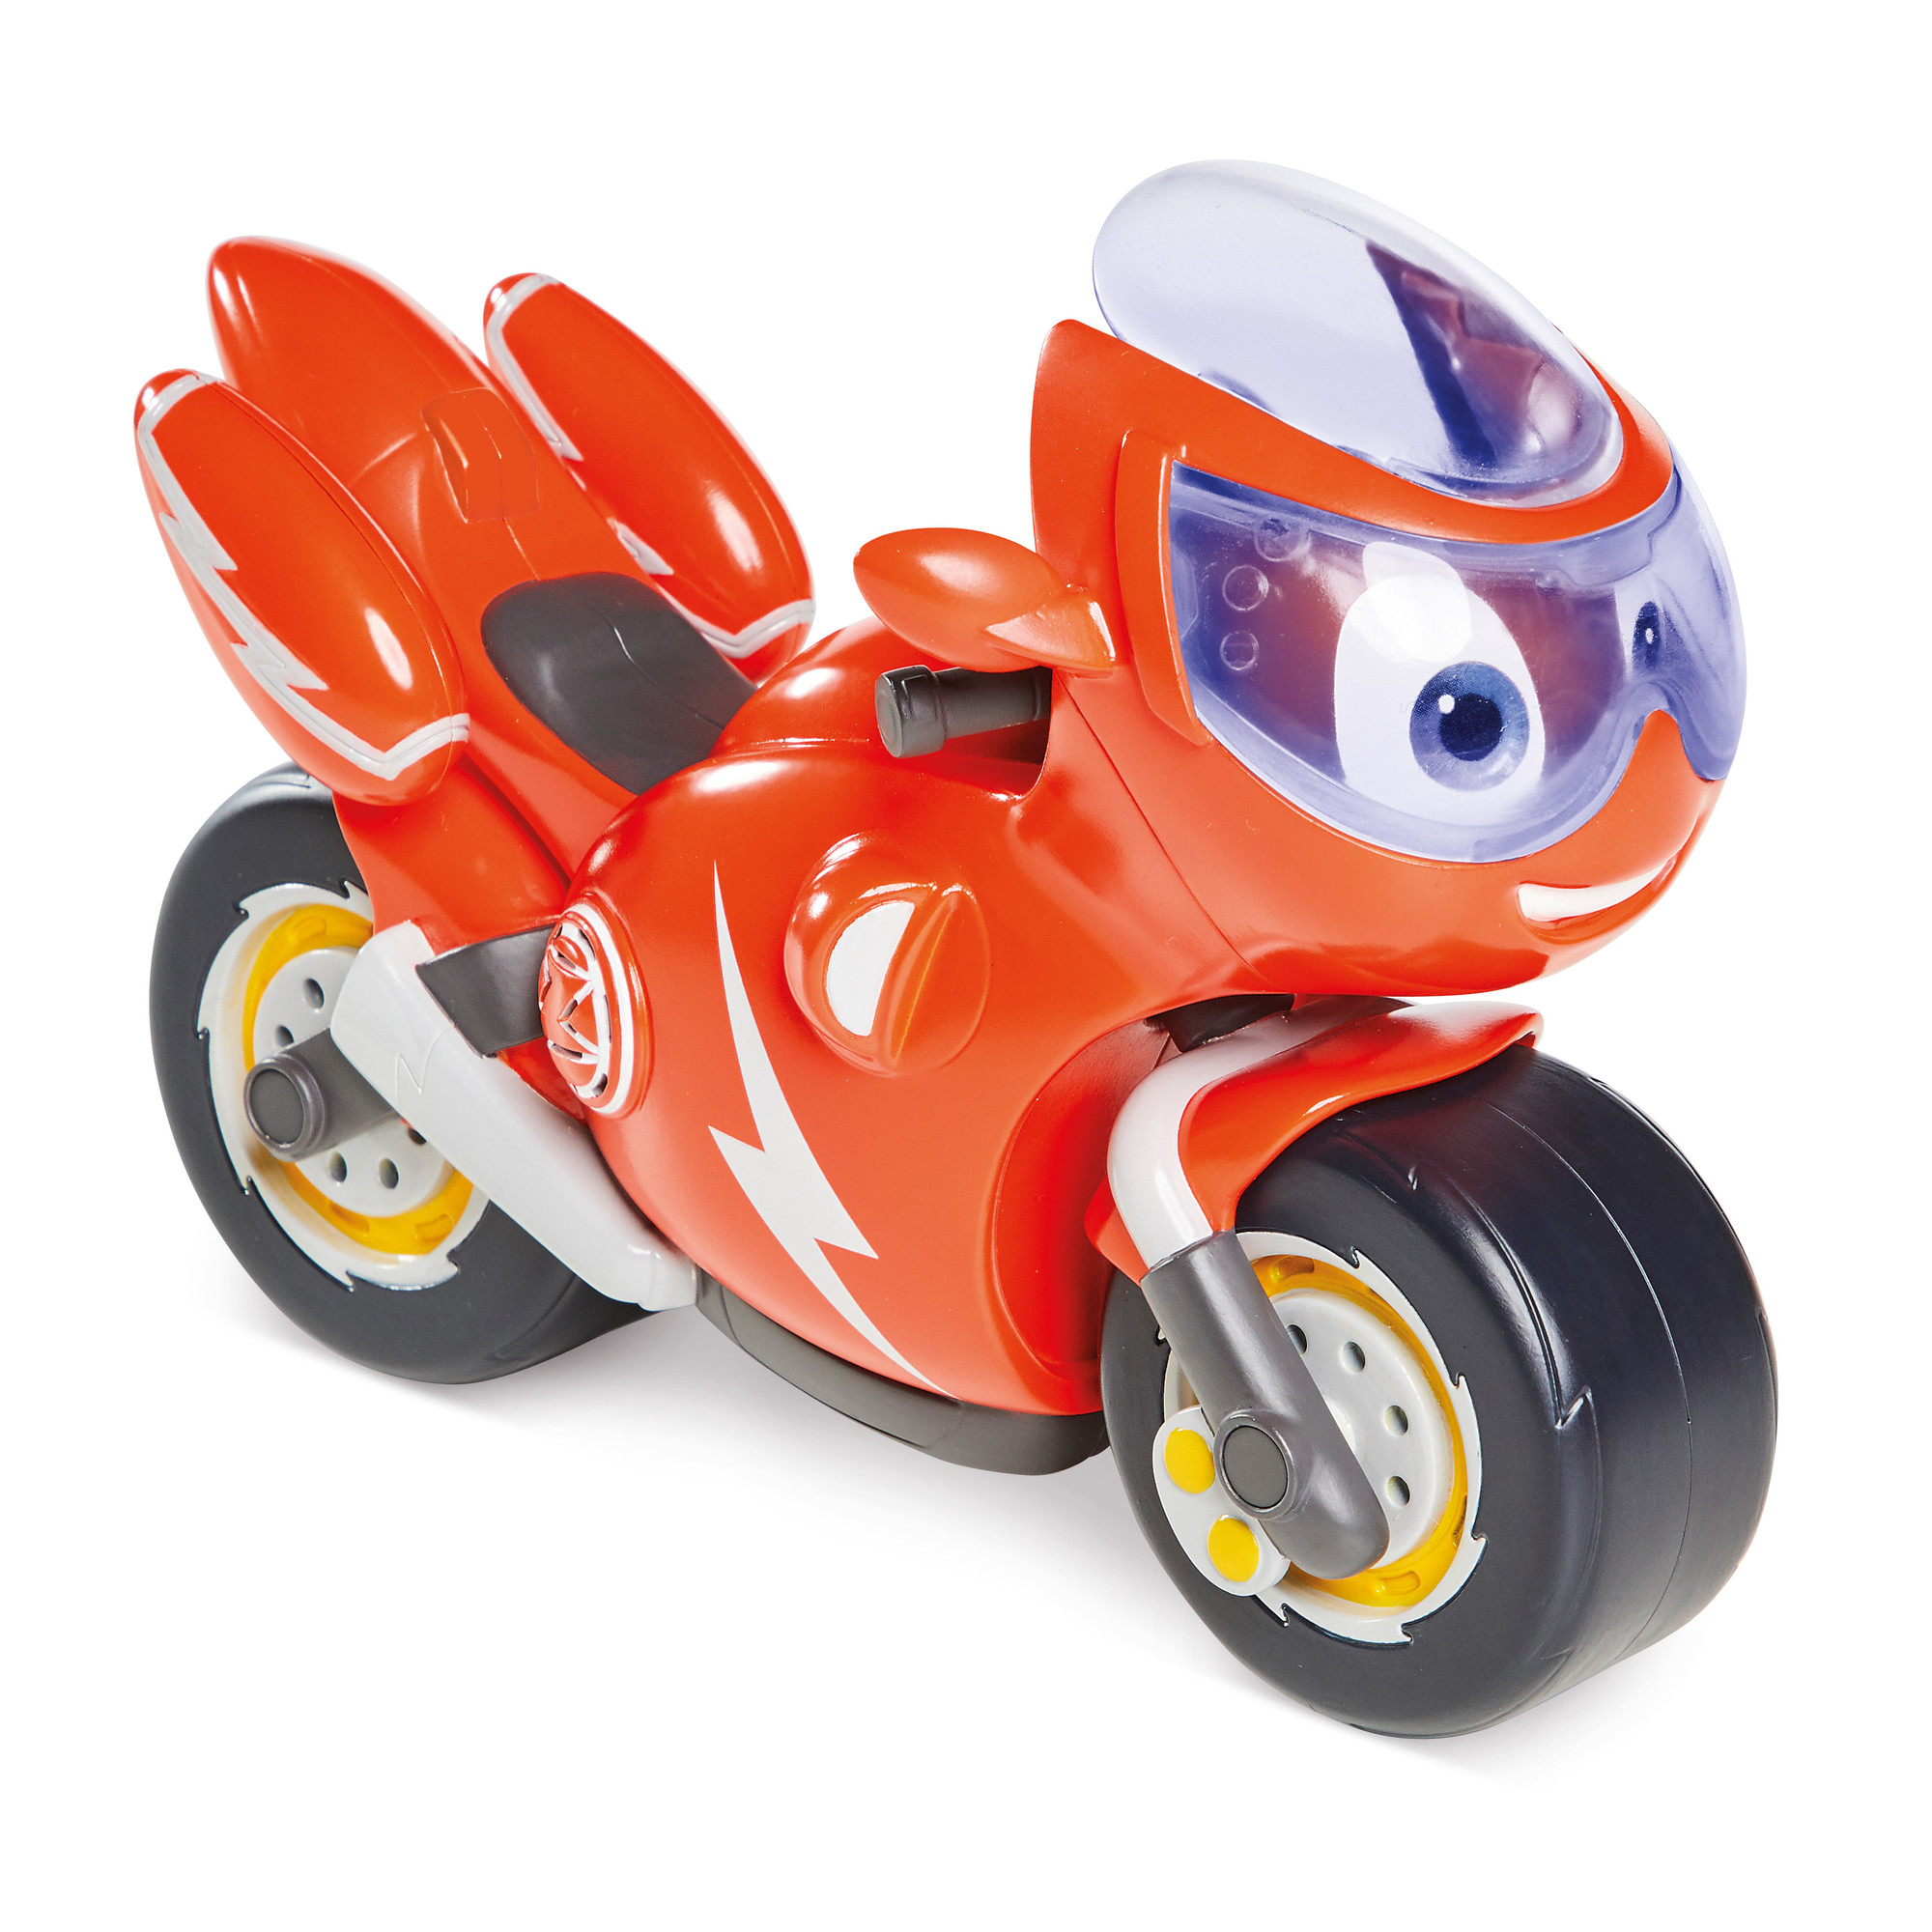 PAW Patroller Rescue /& Transport Vehicle Replacement Front Seats Only